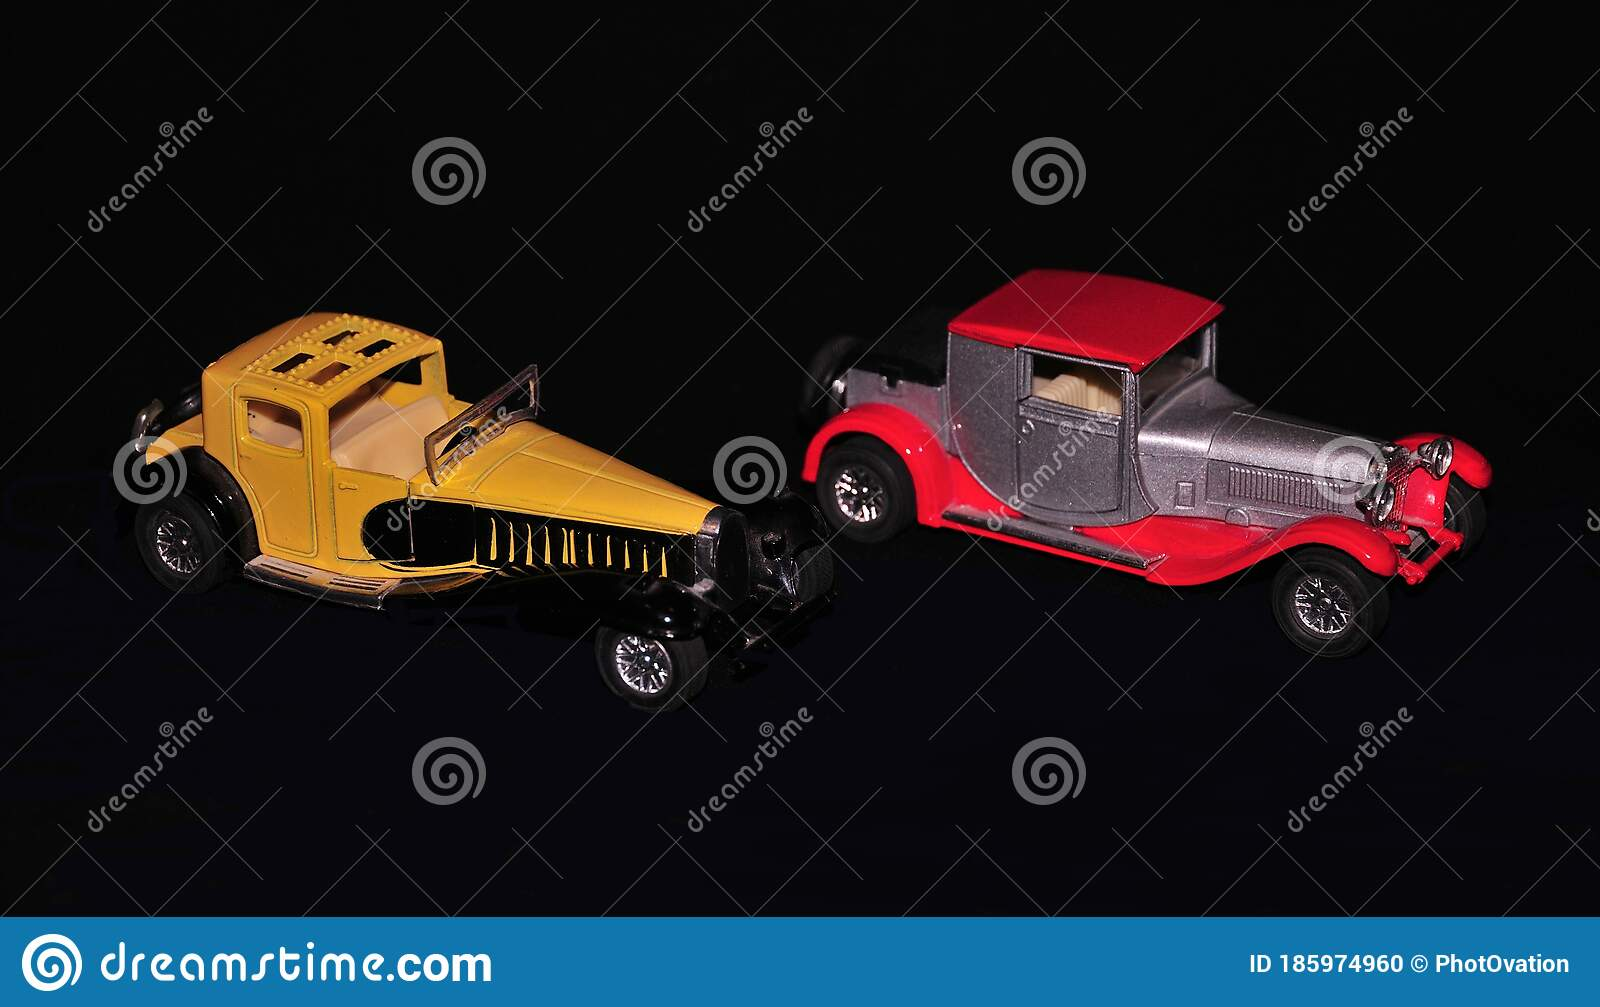 Two Vintage Cars Models Arranged On Black Background To Create Innovative Image Stock Photo Image Of Silver Fast 185974960